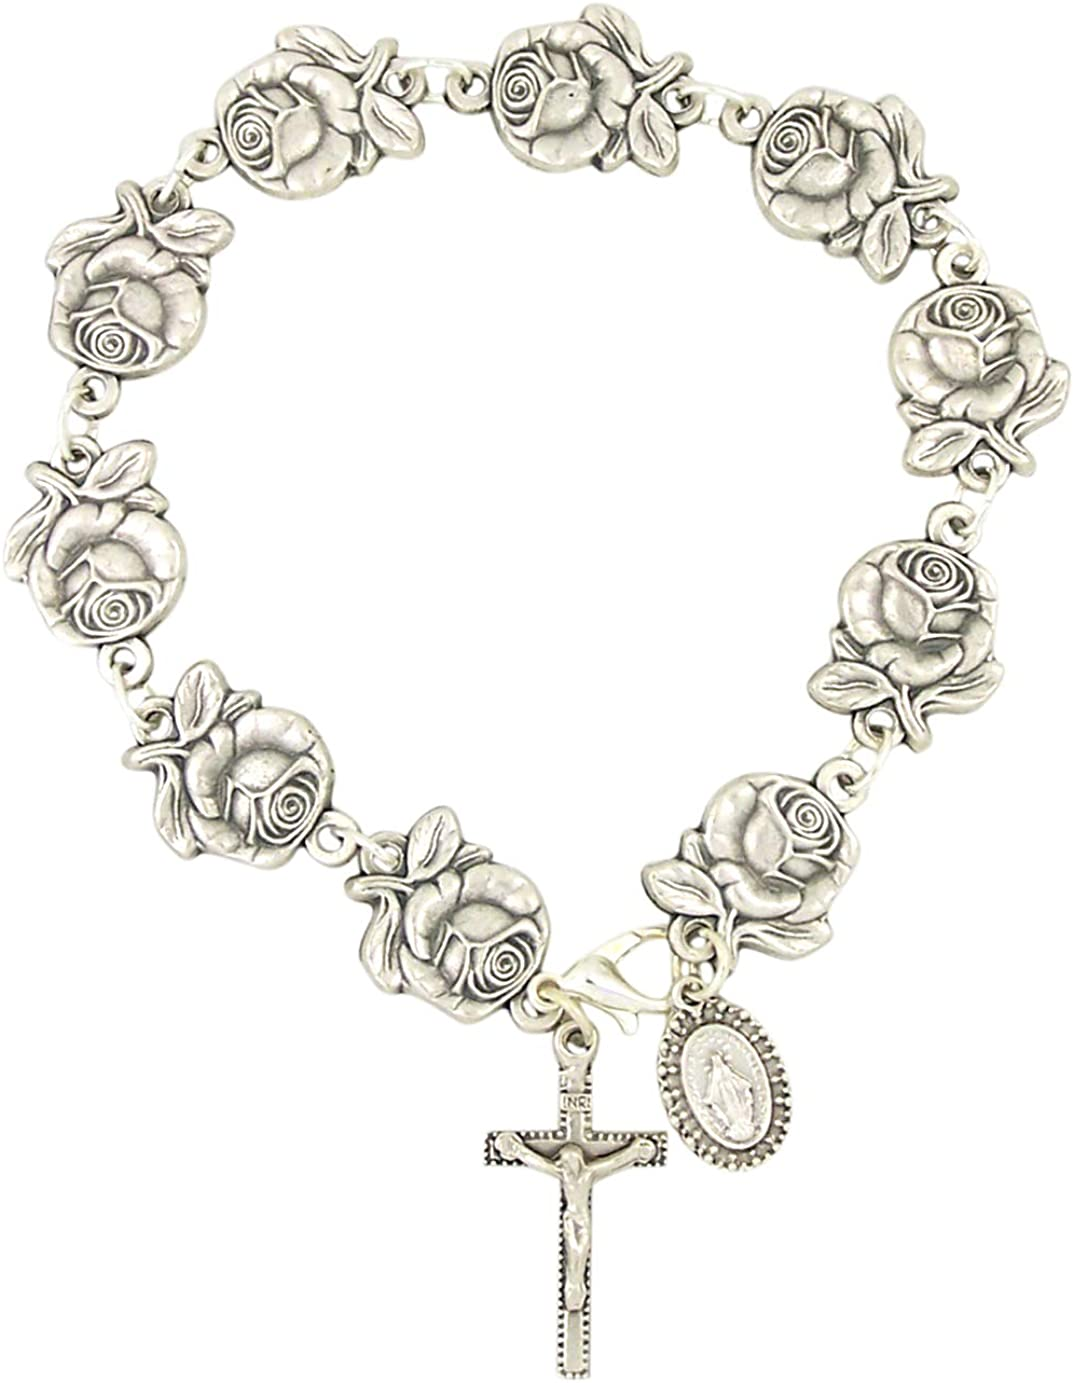 8 Inches Long Silver Tone Metal Rosebud Design Catholic One Decade Rosary Bracelet with Miraculous Medal Back Design and Charm and Crucifix Cross Pendant